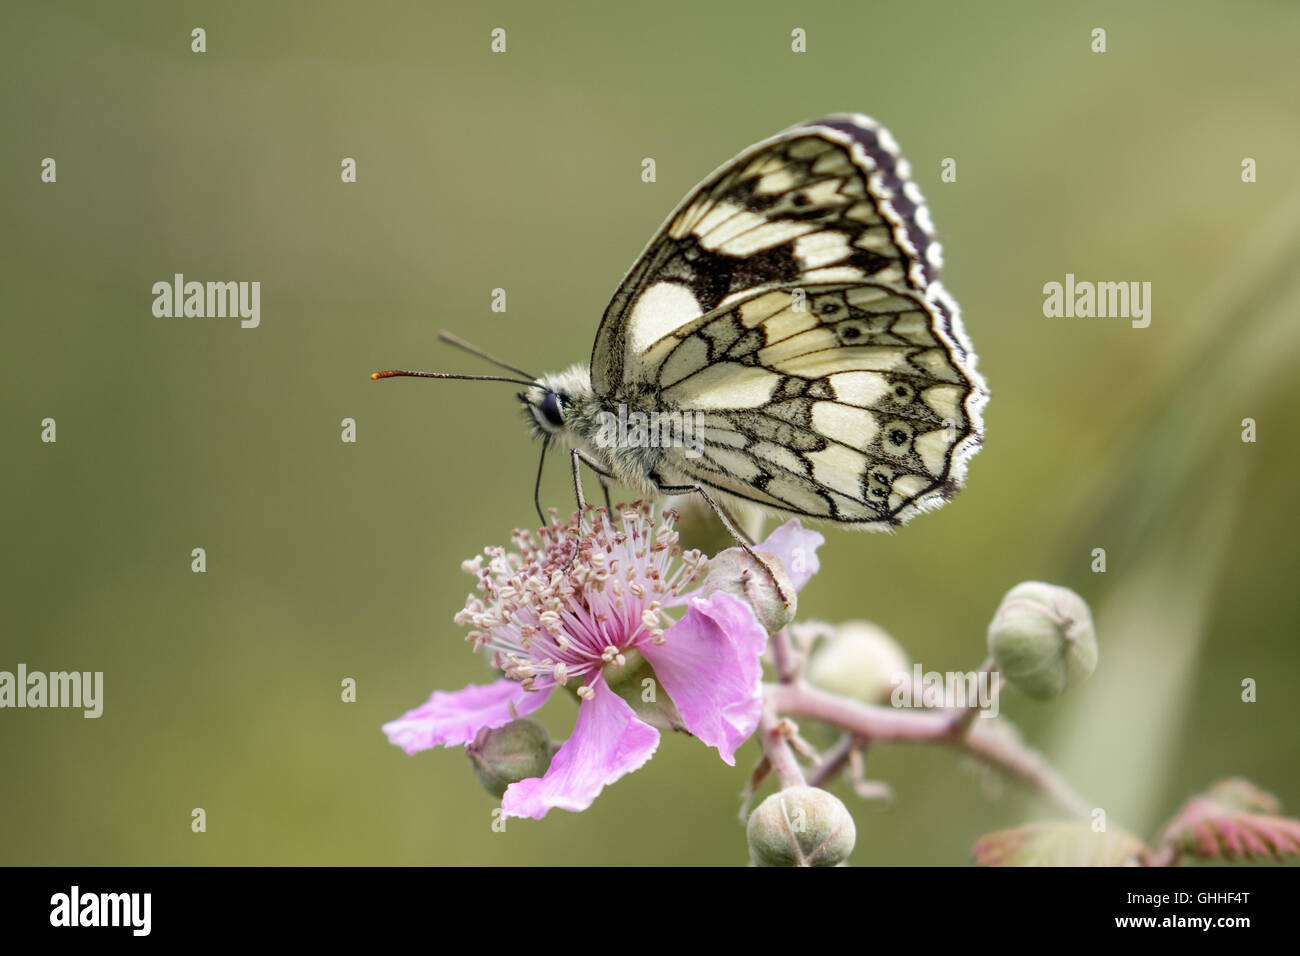 Marbled White butterfly (Melanargia galathea) on pink flower. Profile view - Stock Image